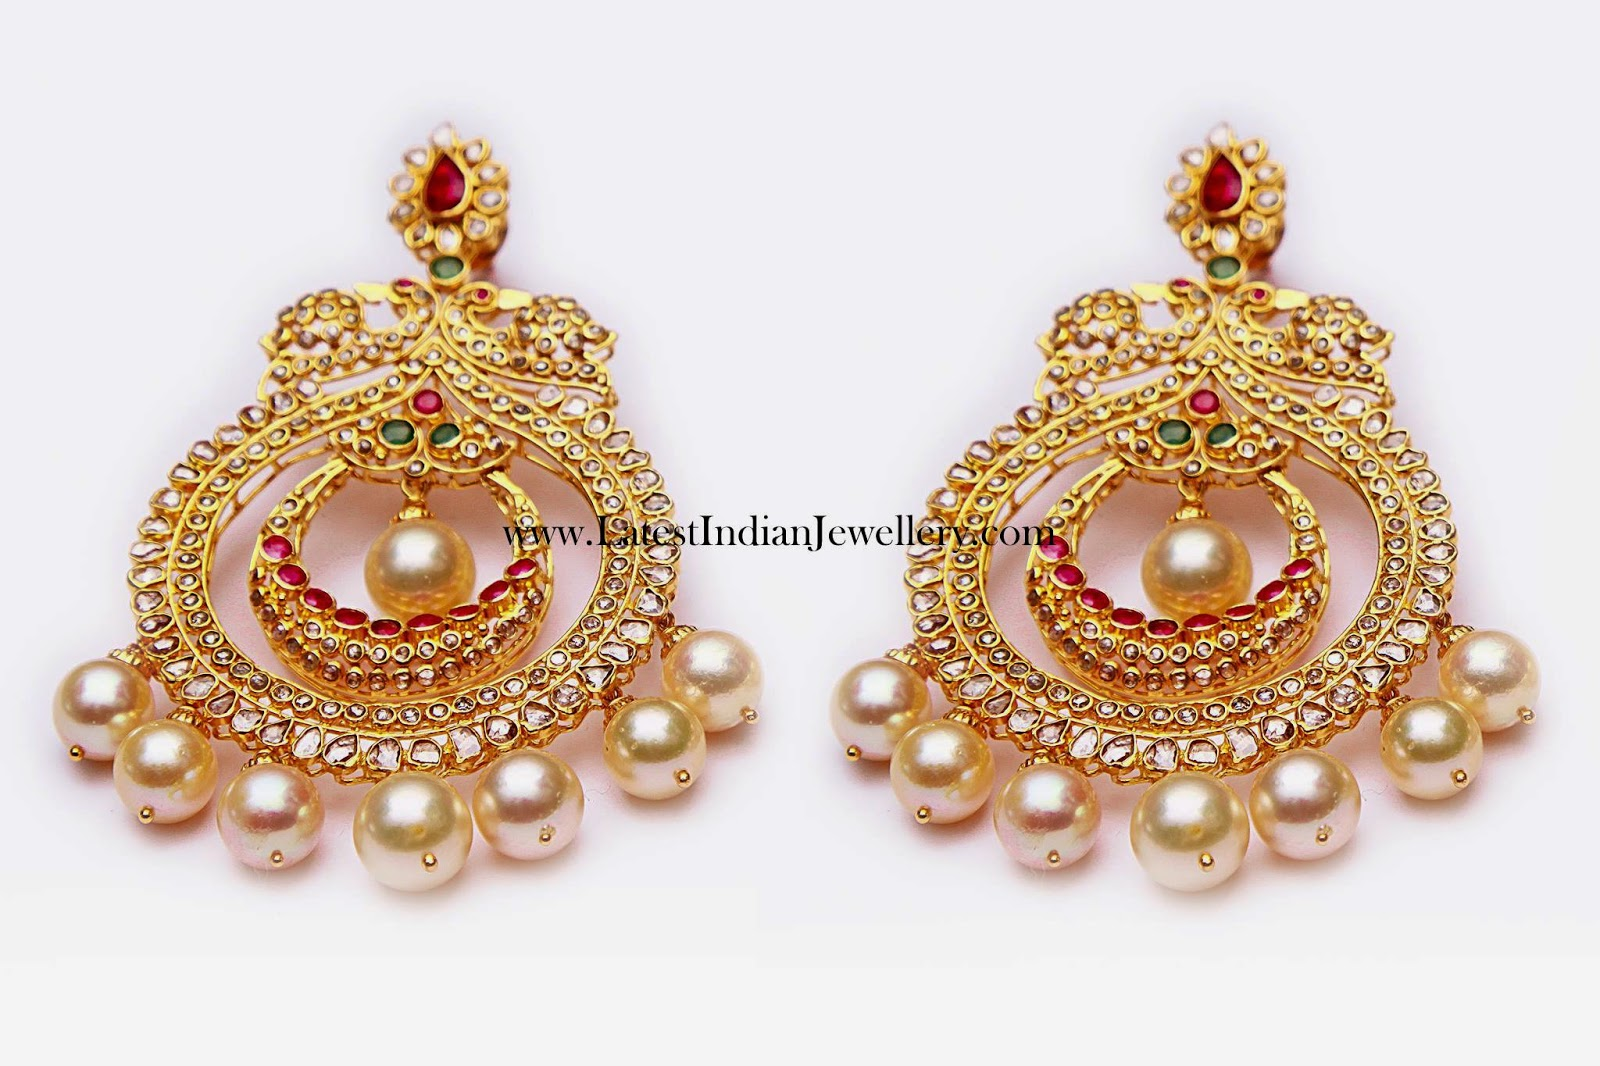 Uncut Diamond Chand Bali Earrings